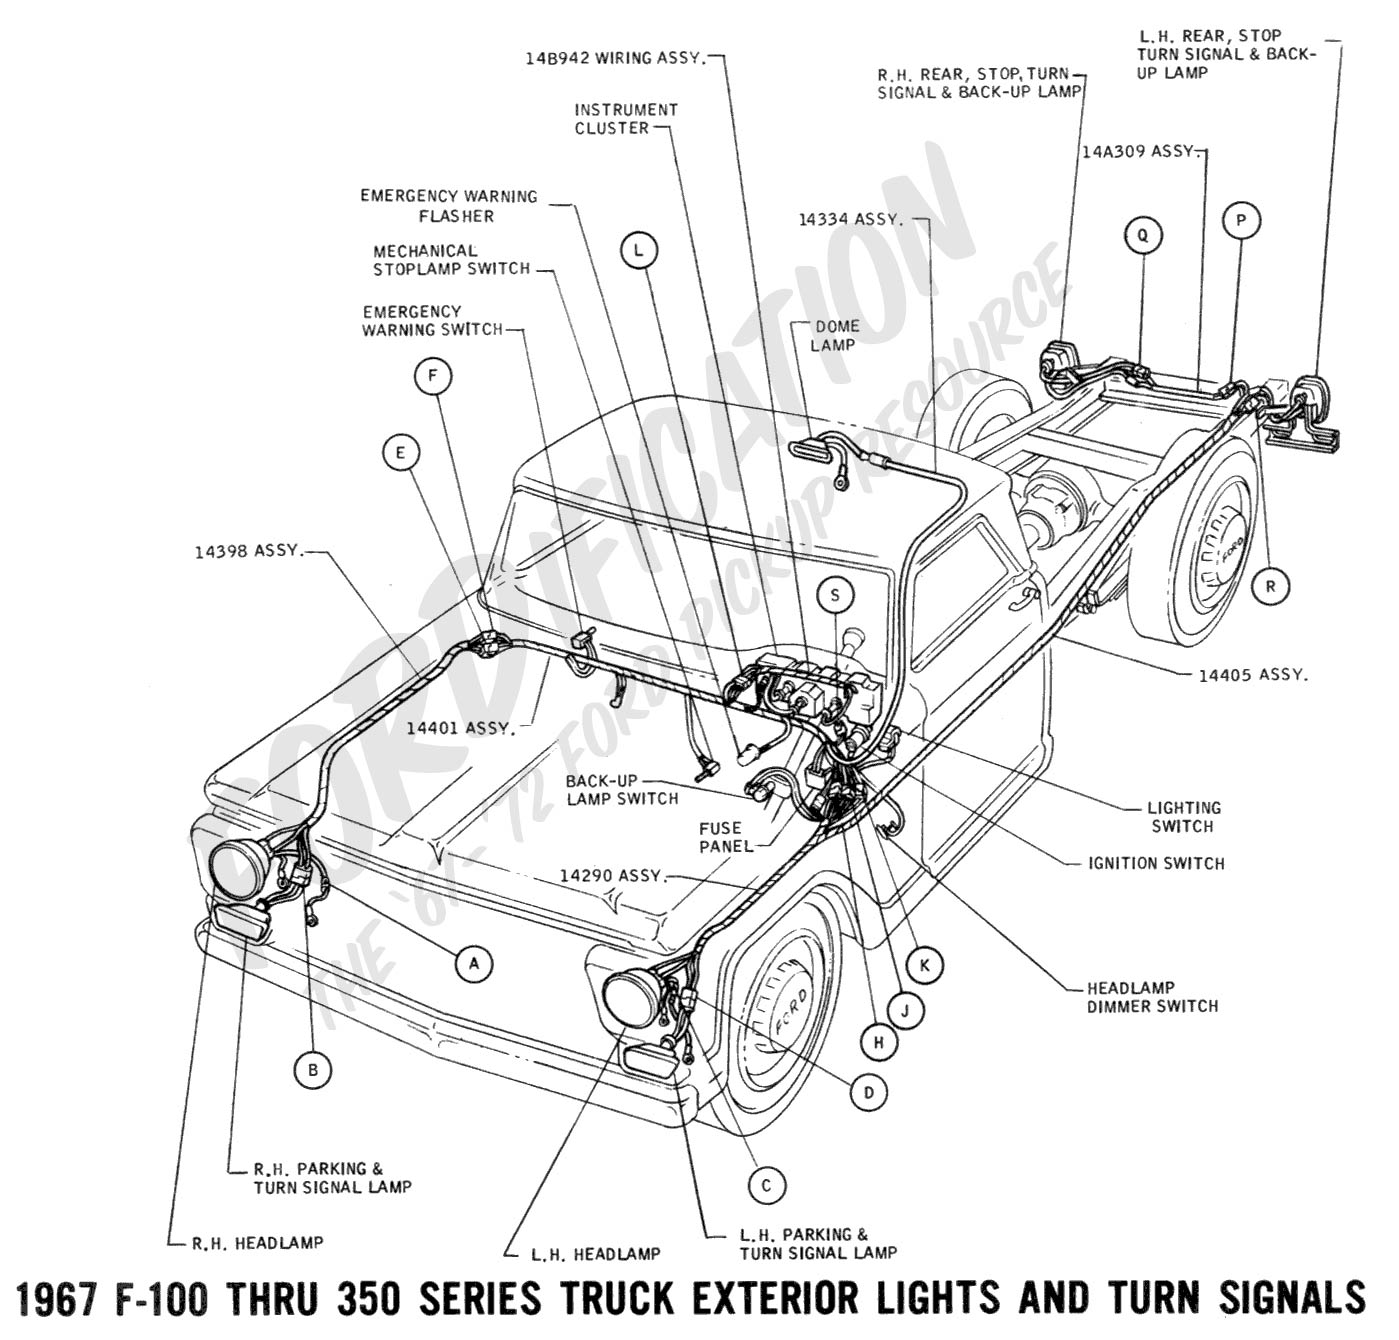 wiring 1967extlights01 ford truck technical drawings and schematics section h wiring 1999 ford f150 turn signal wiring diagram at crackthecode.co